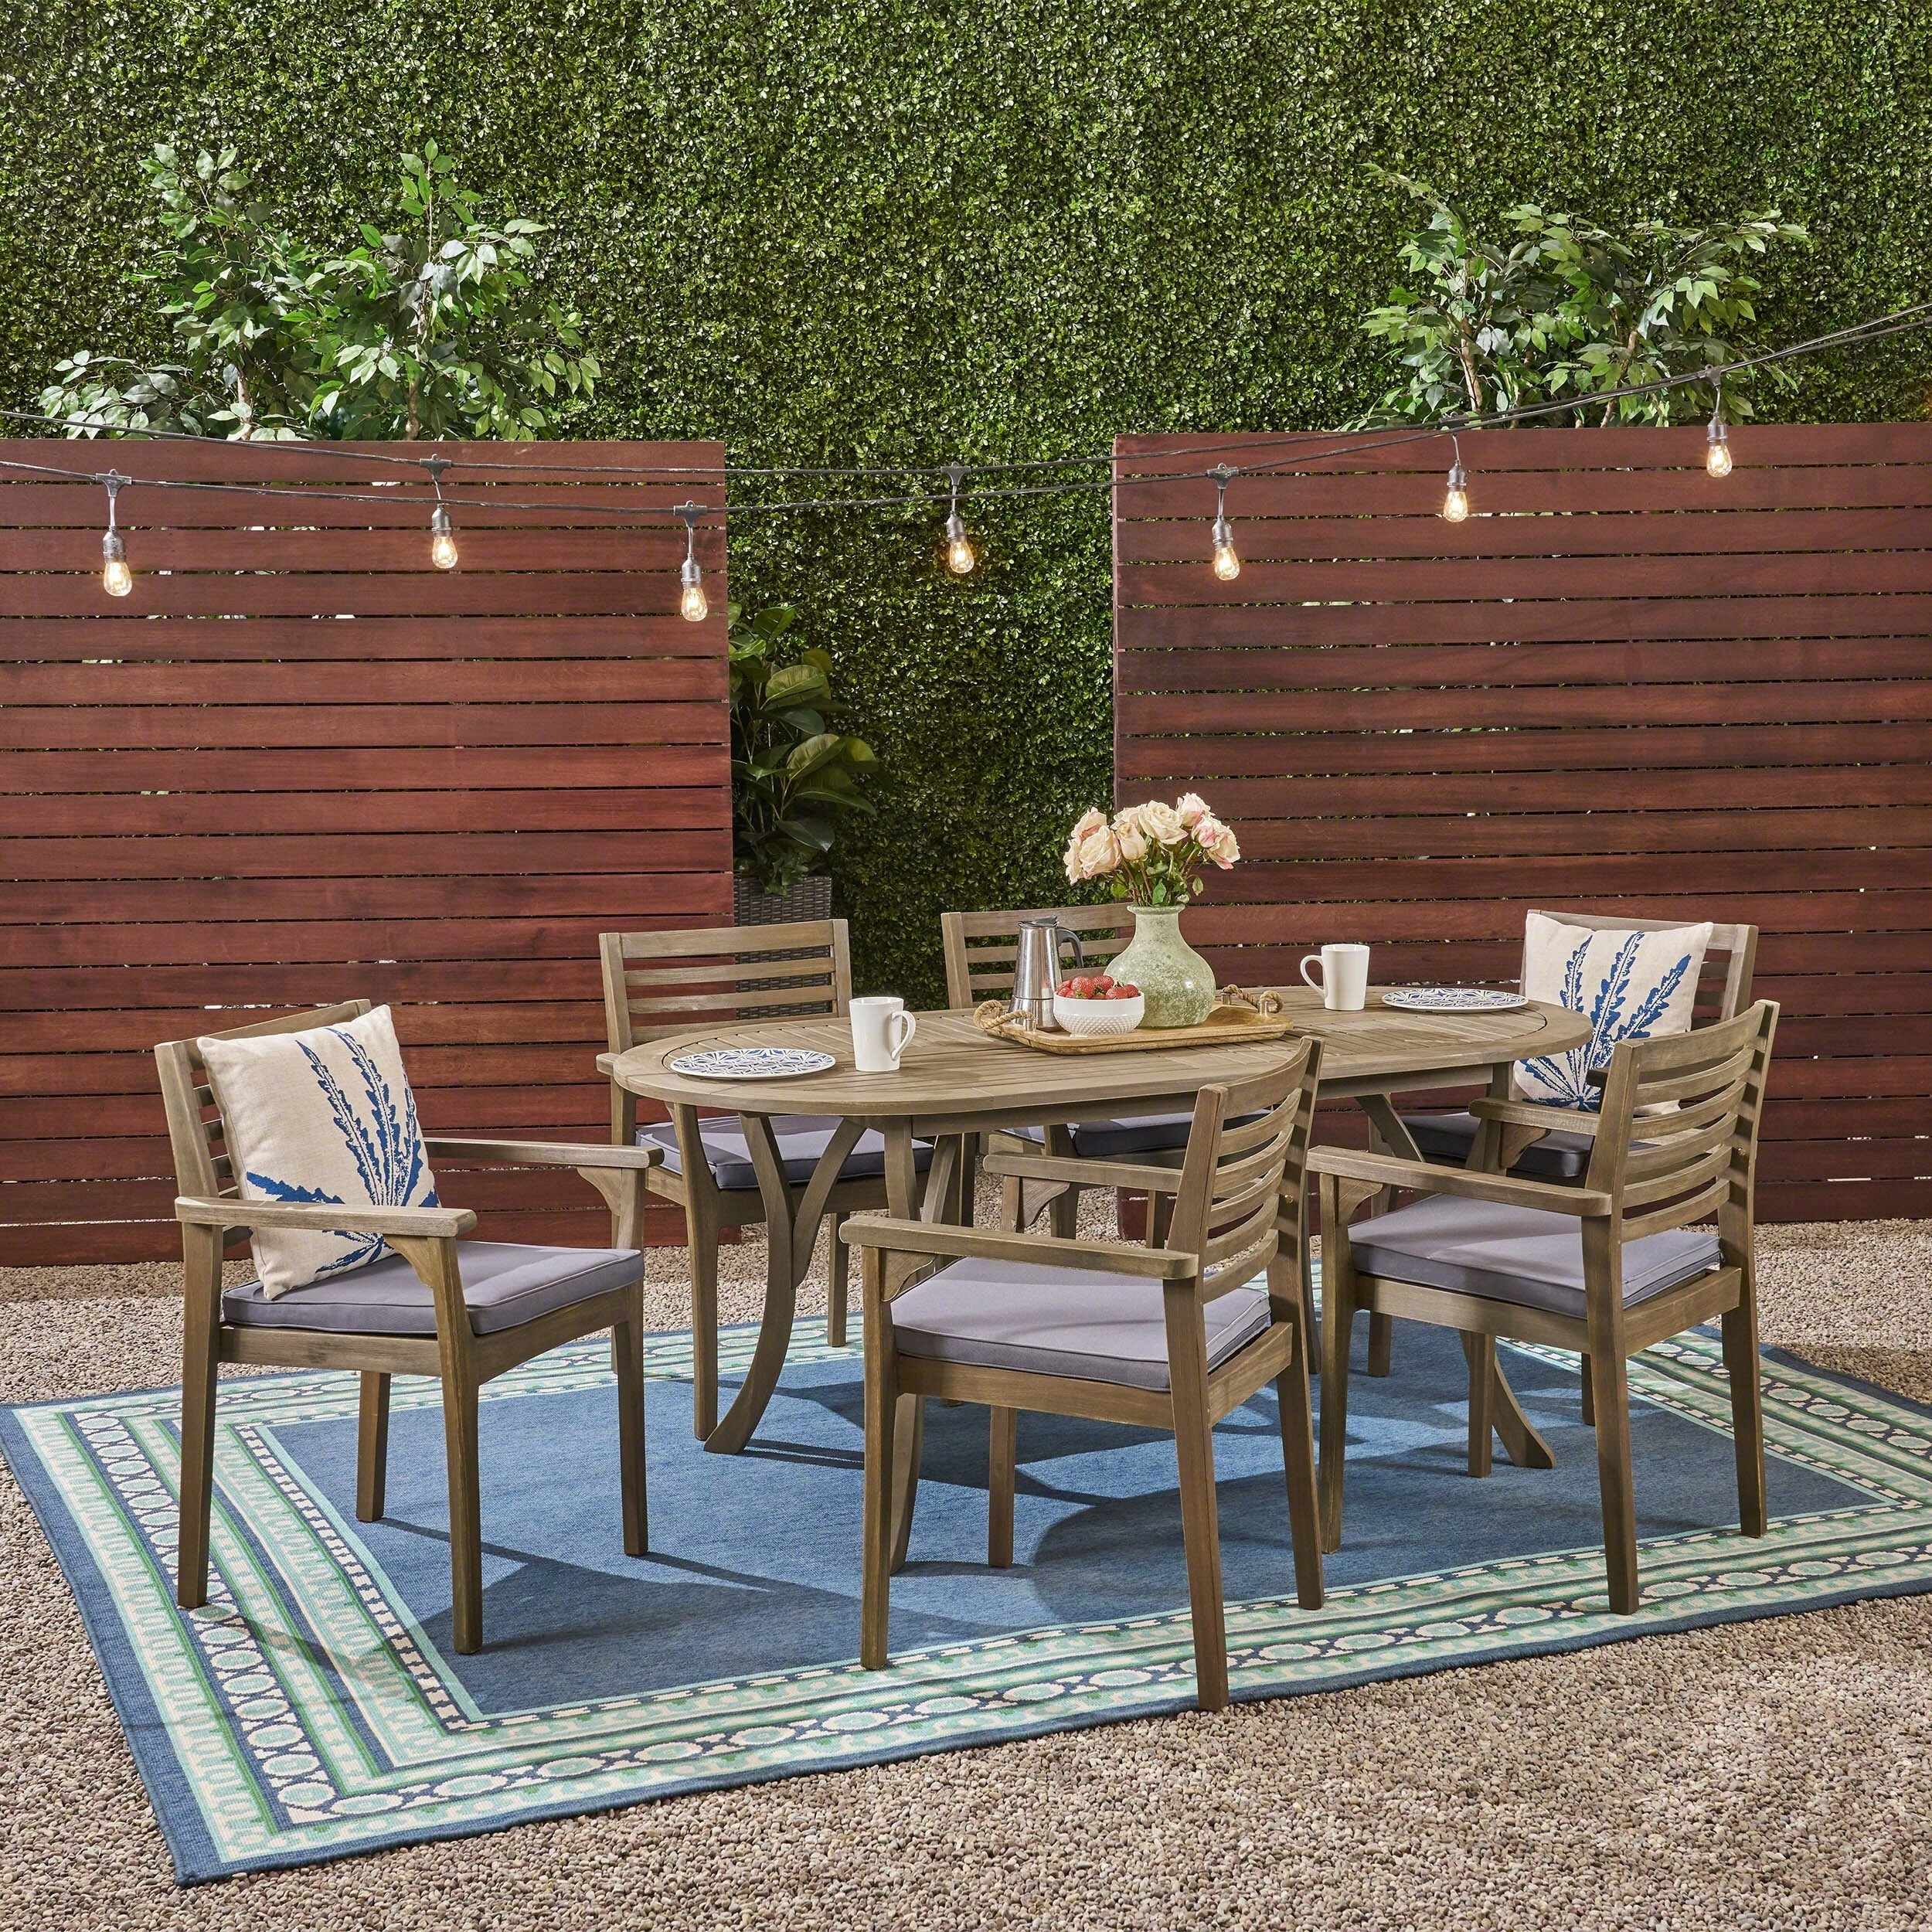 Shop casa outdoor 6 seater 70 oval acacia dining set with carved legs by christopher knight home on sale free shipping today overstock 25614318